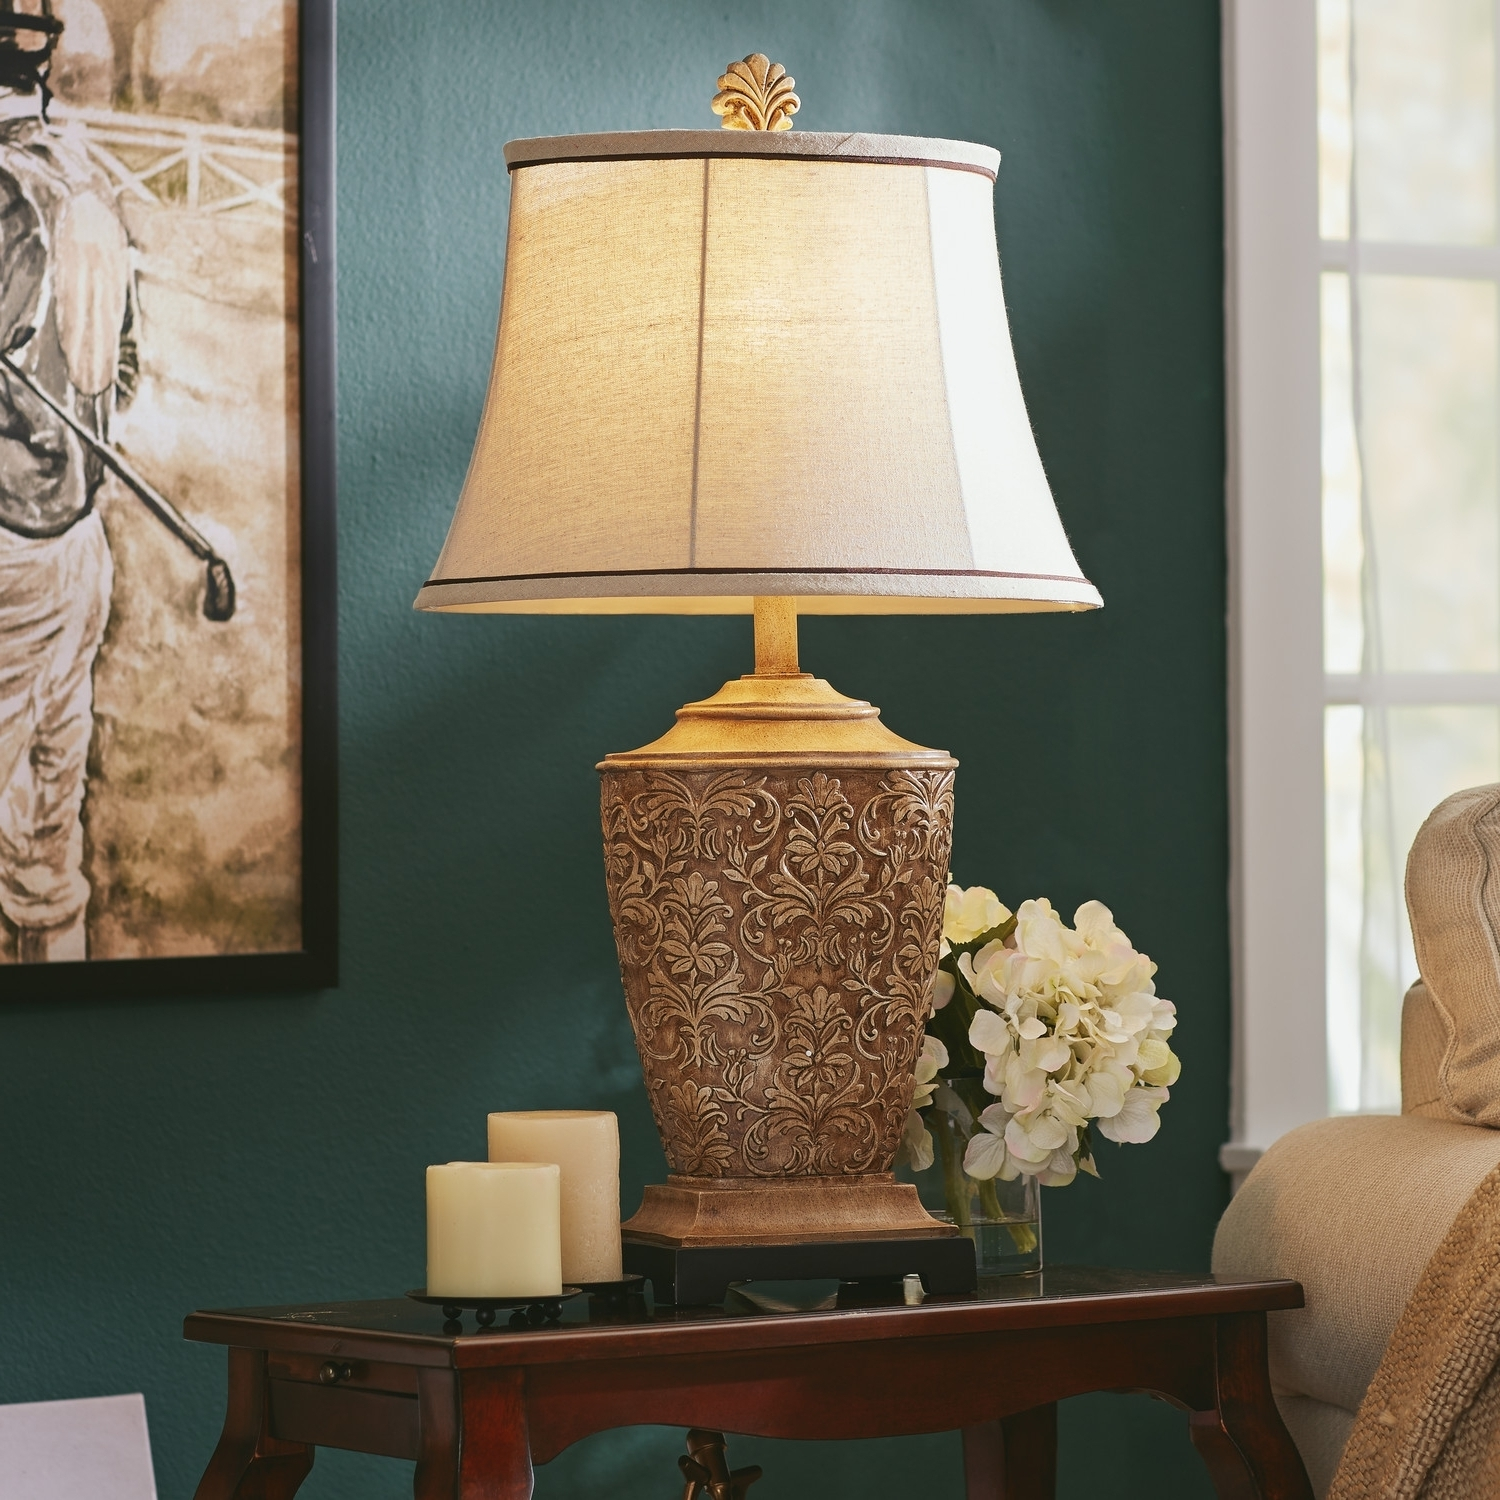 2018 Cheap Living Room Lamps Living Room Table Lamps Amazon Black Lamps With Black Living Room Table Lamps (View 4 of 15)